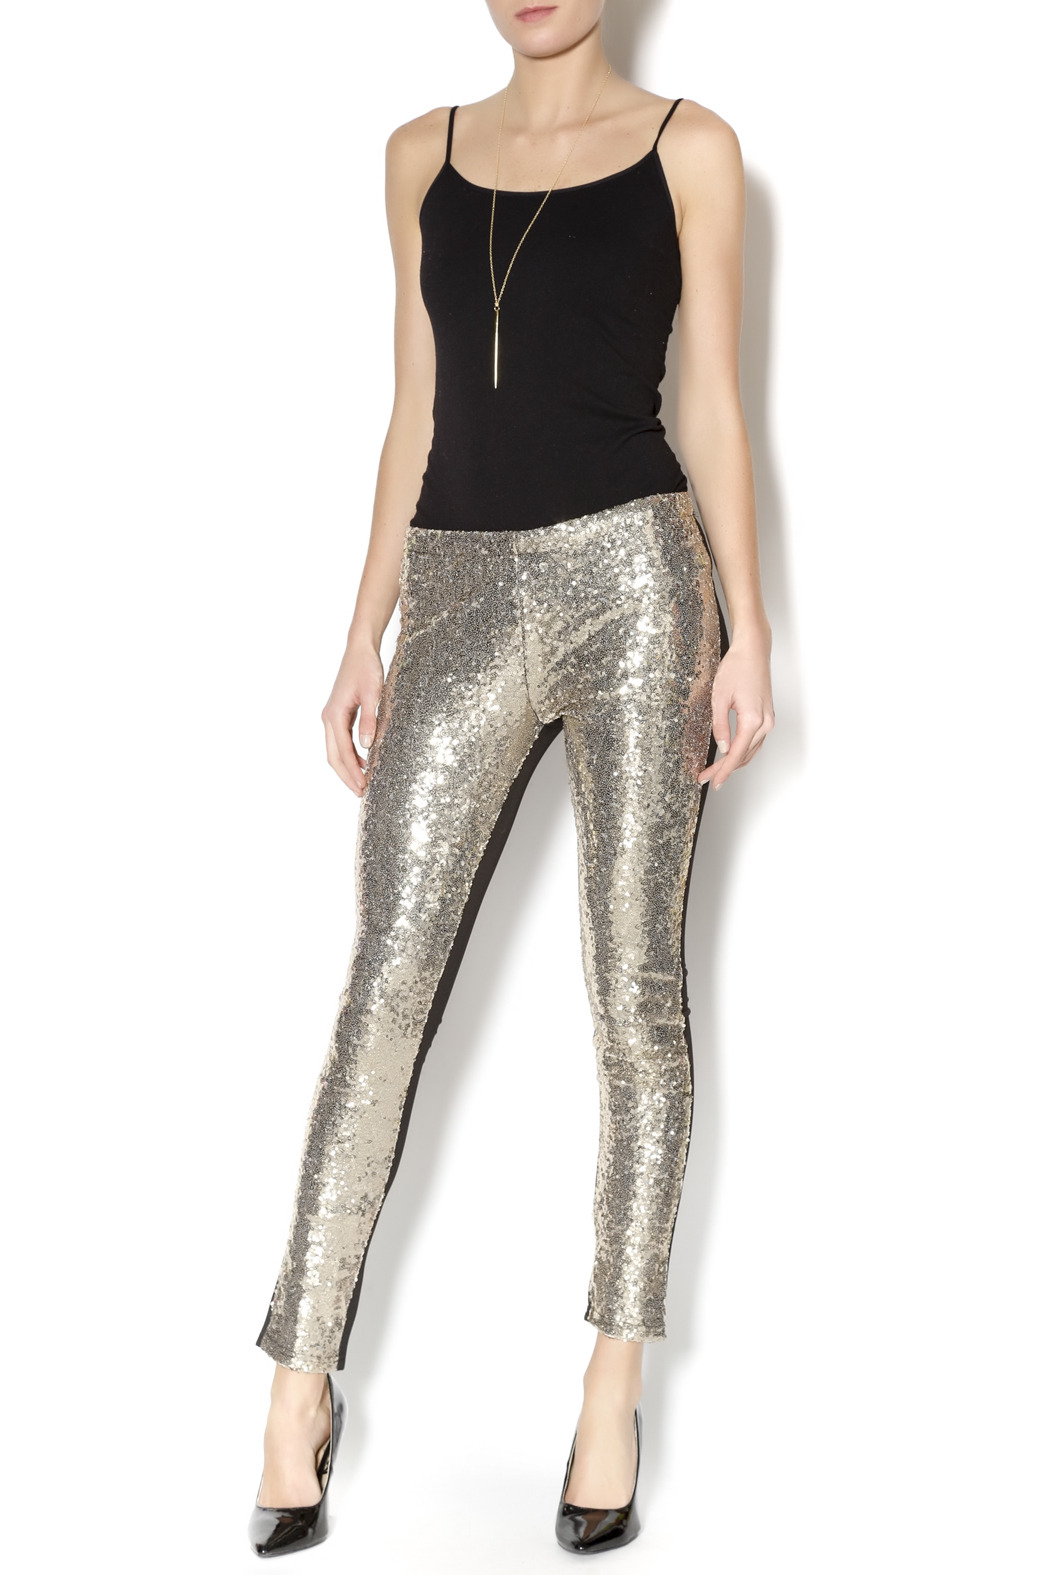 T L B D Gold Sequin Leggings From Montclair By That